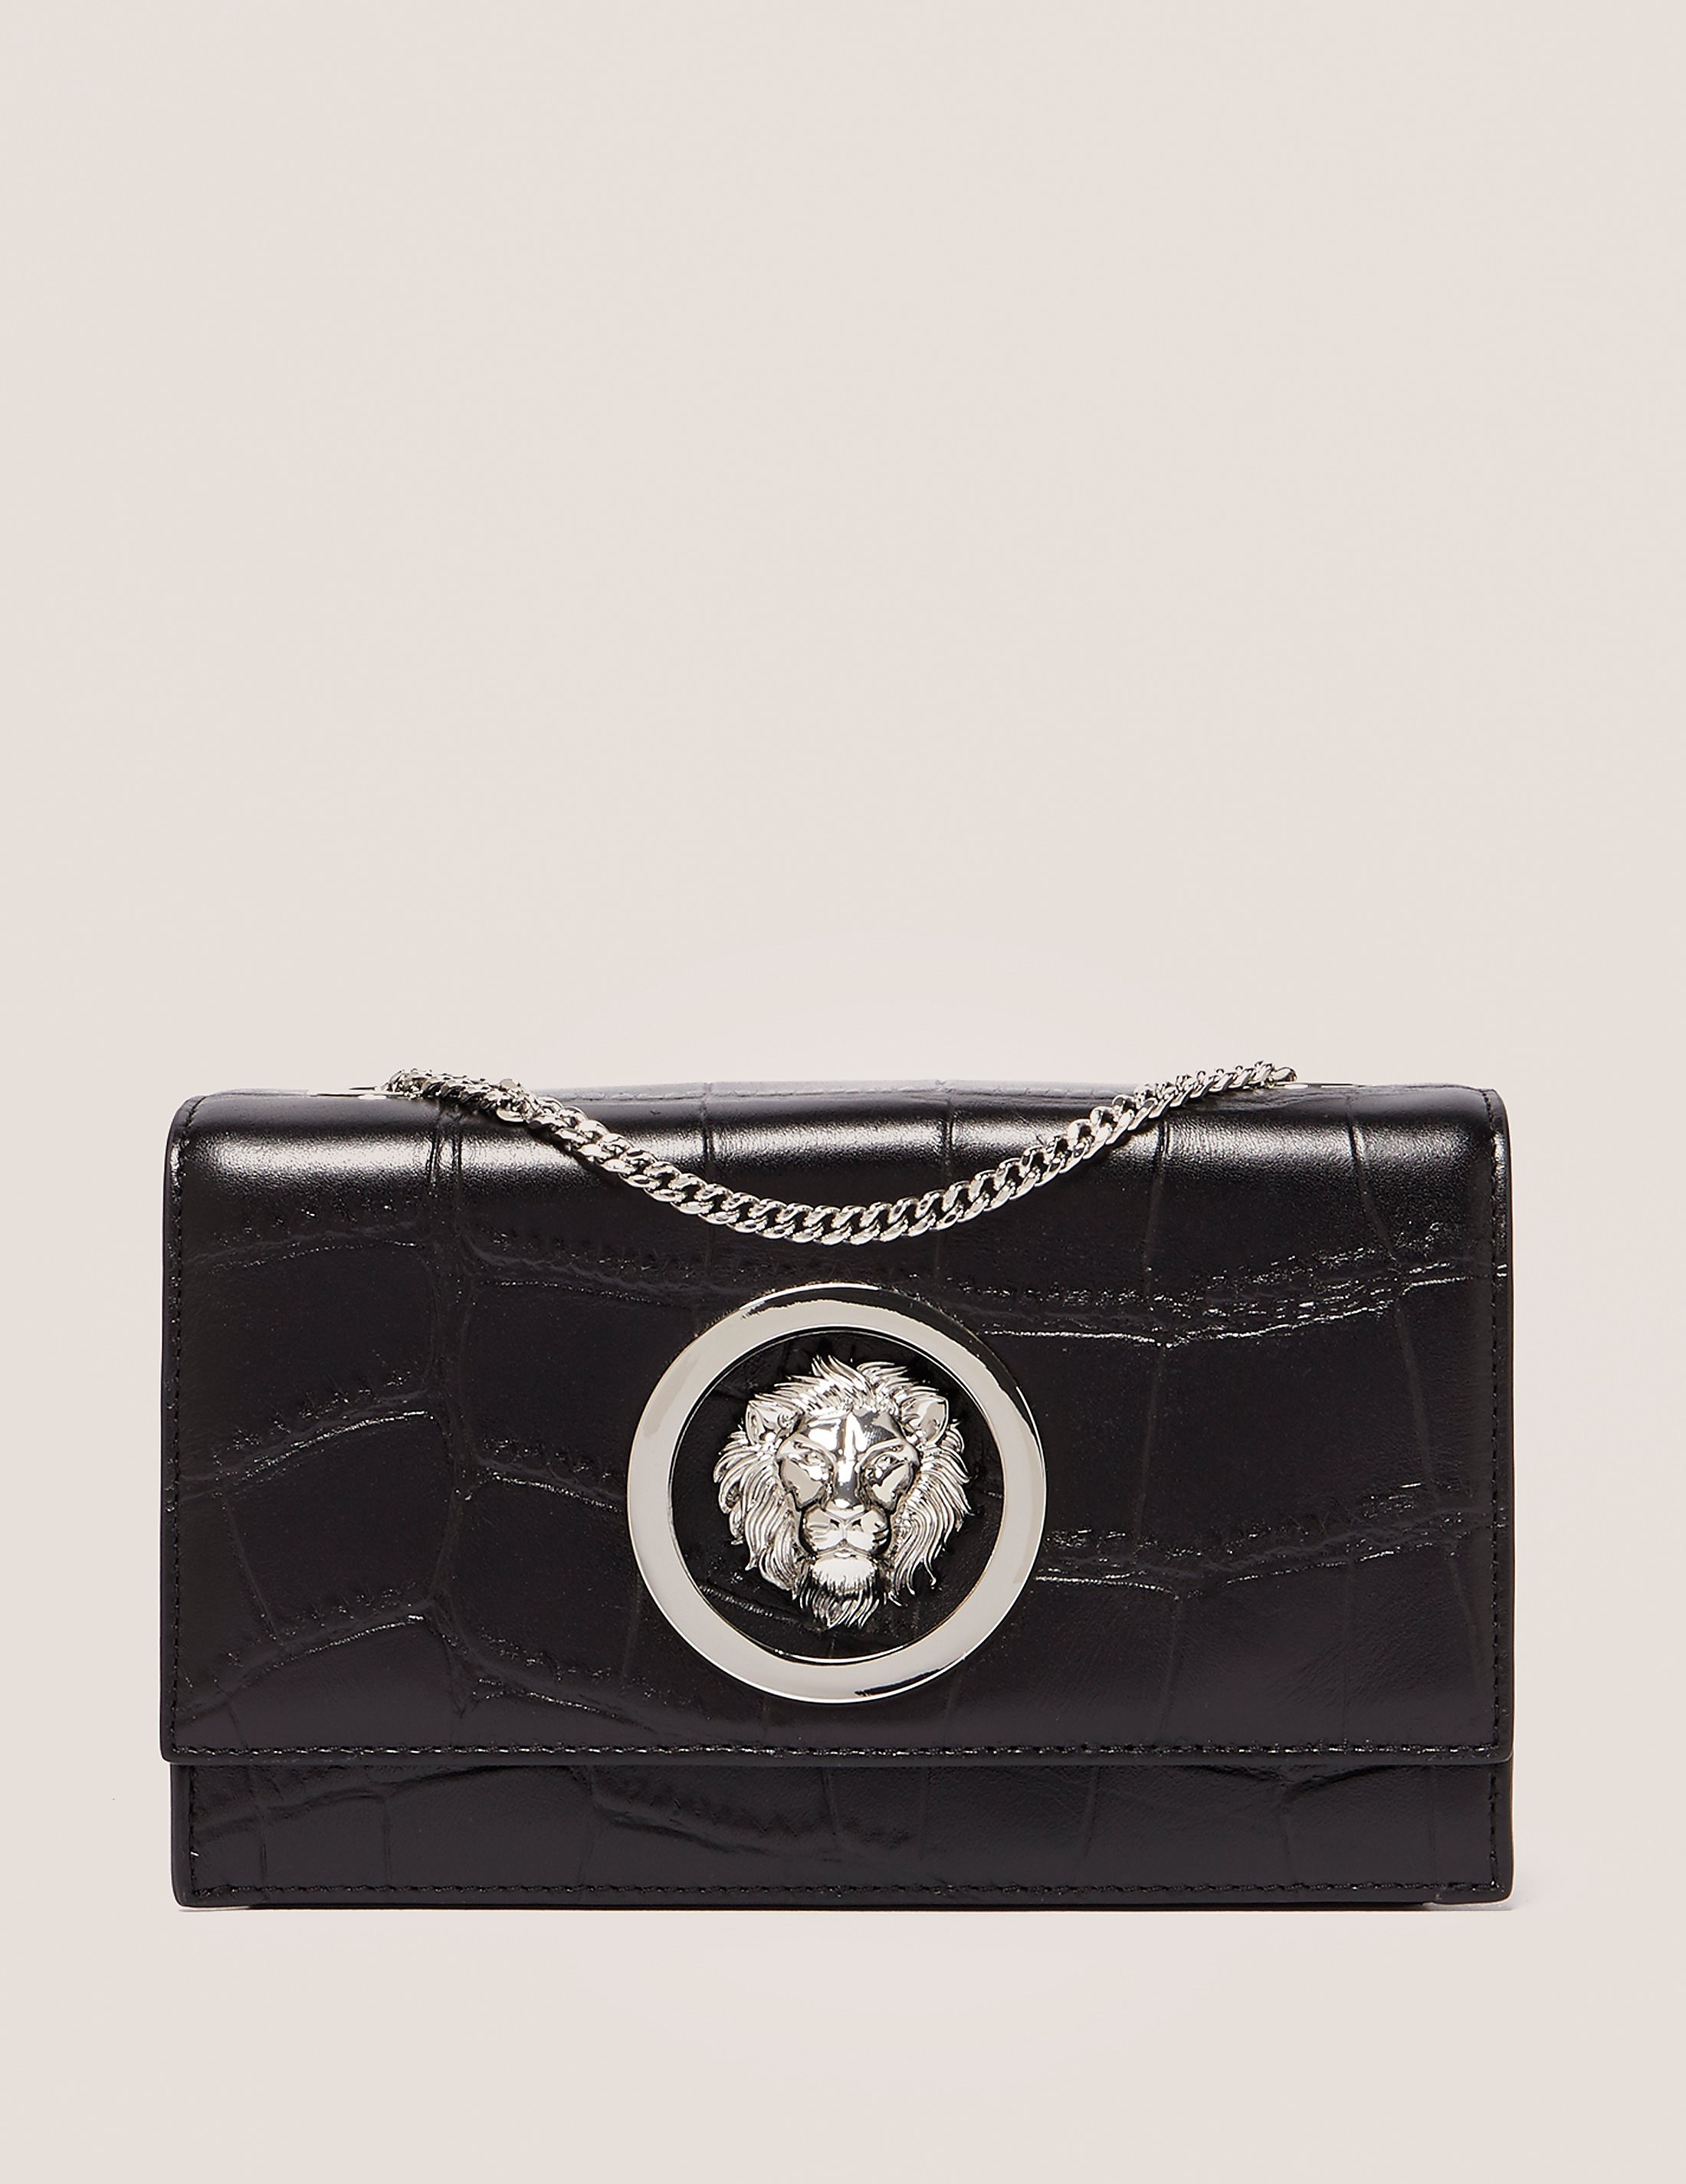 Versus Versace Lion Head Crossbody Bag